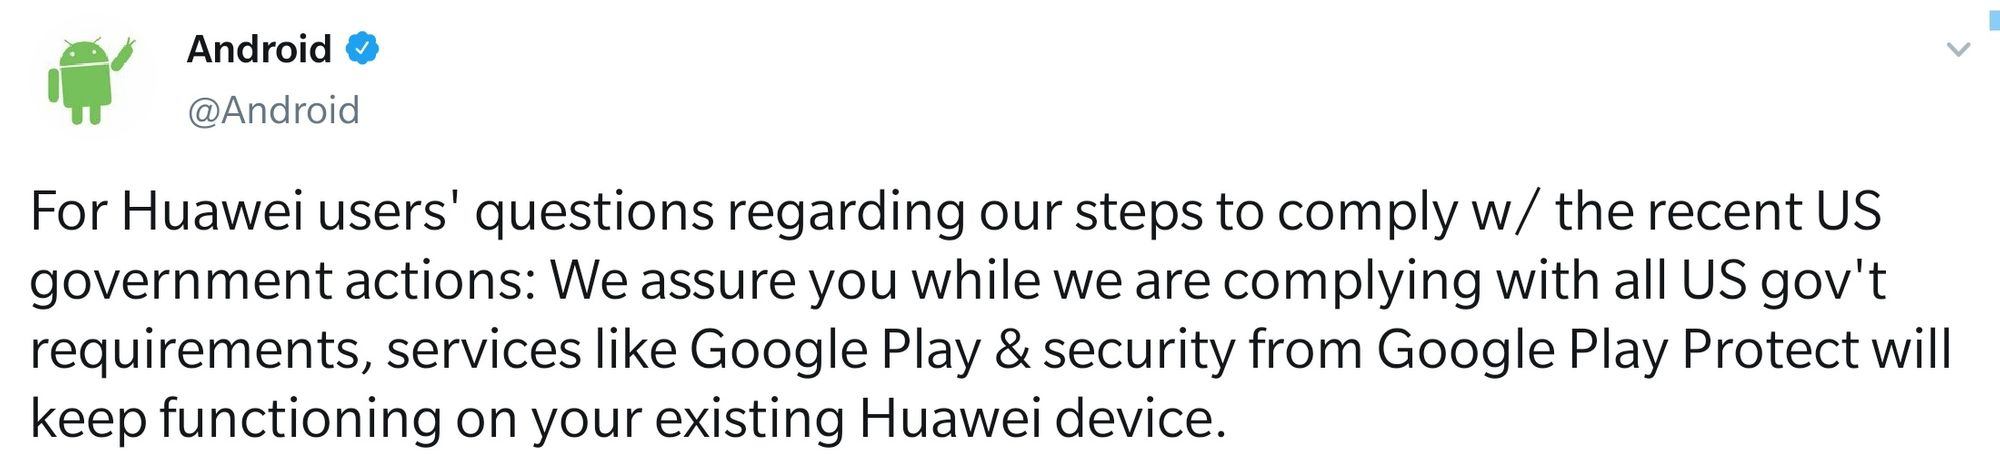 Respuesta Android bloqueo Huawei